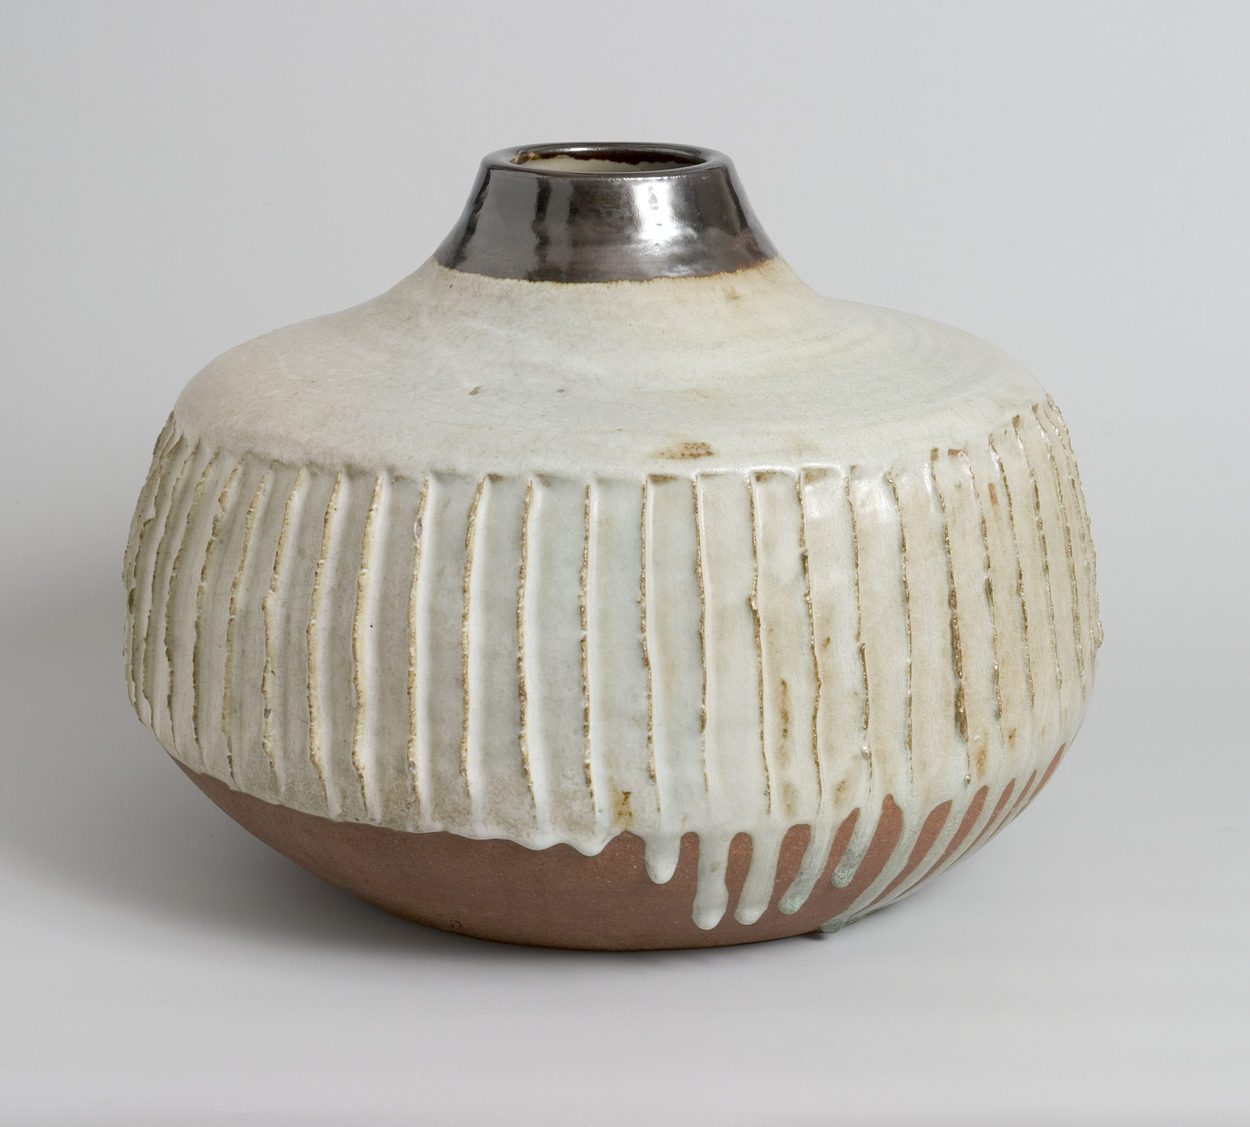 A piece of pottery by Janet Leach